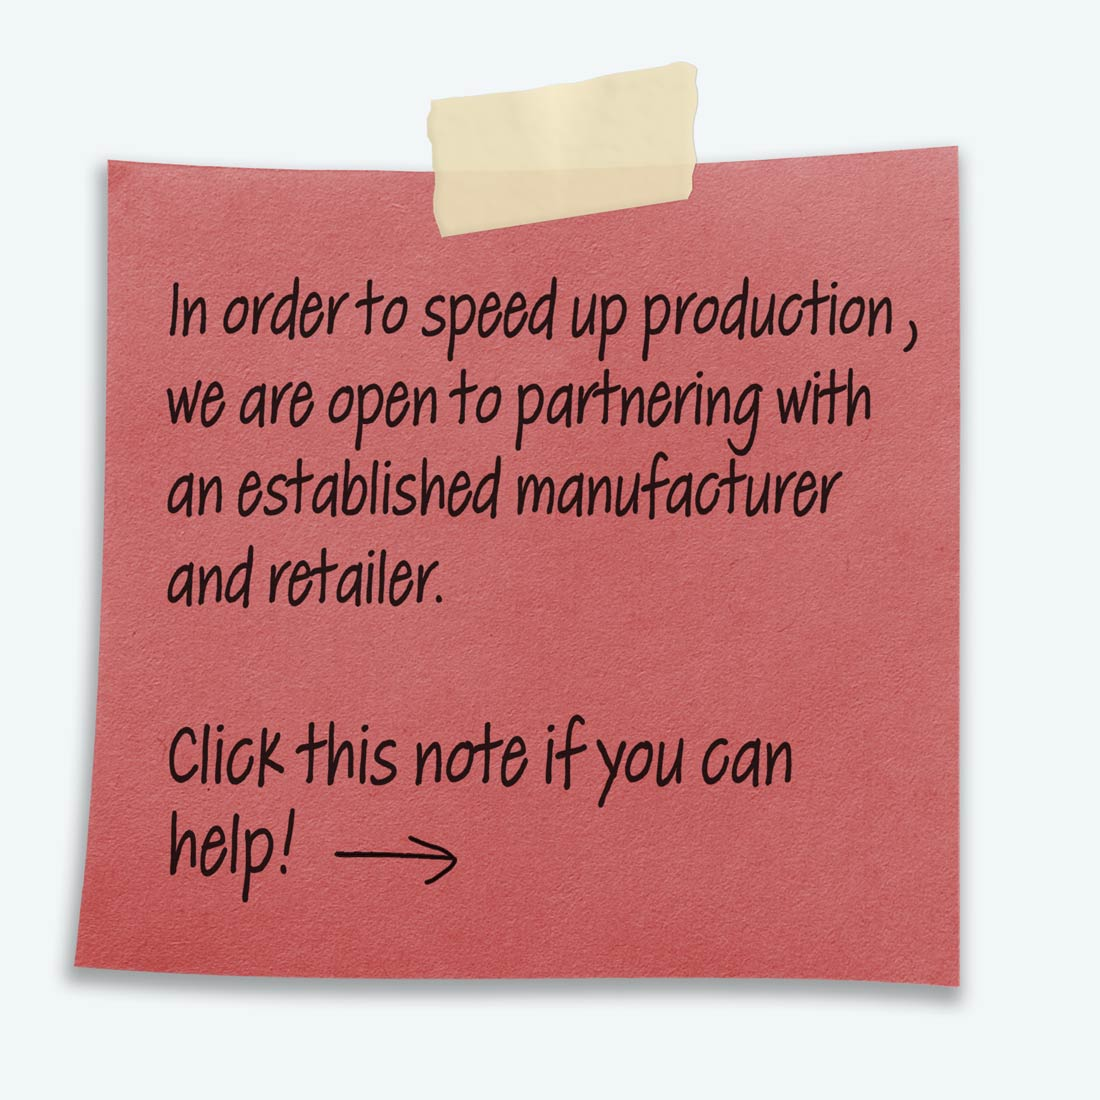 "Red post it note that states ""In order to speed up production, we are open to partnering with an established manufacturer and retailer."" Note also serves as a button to our contact page."